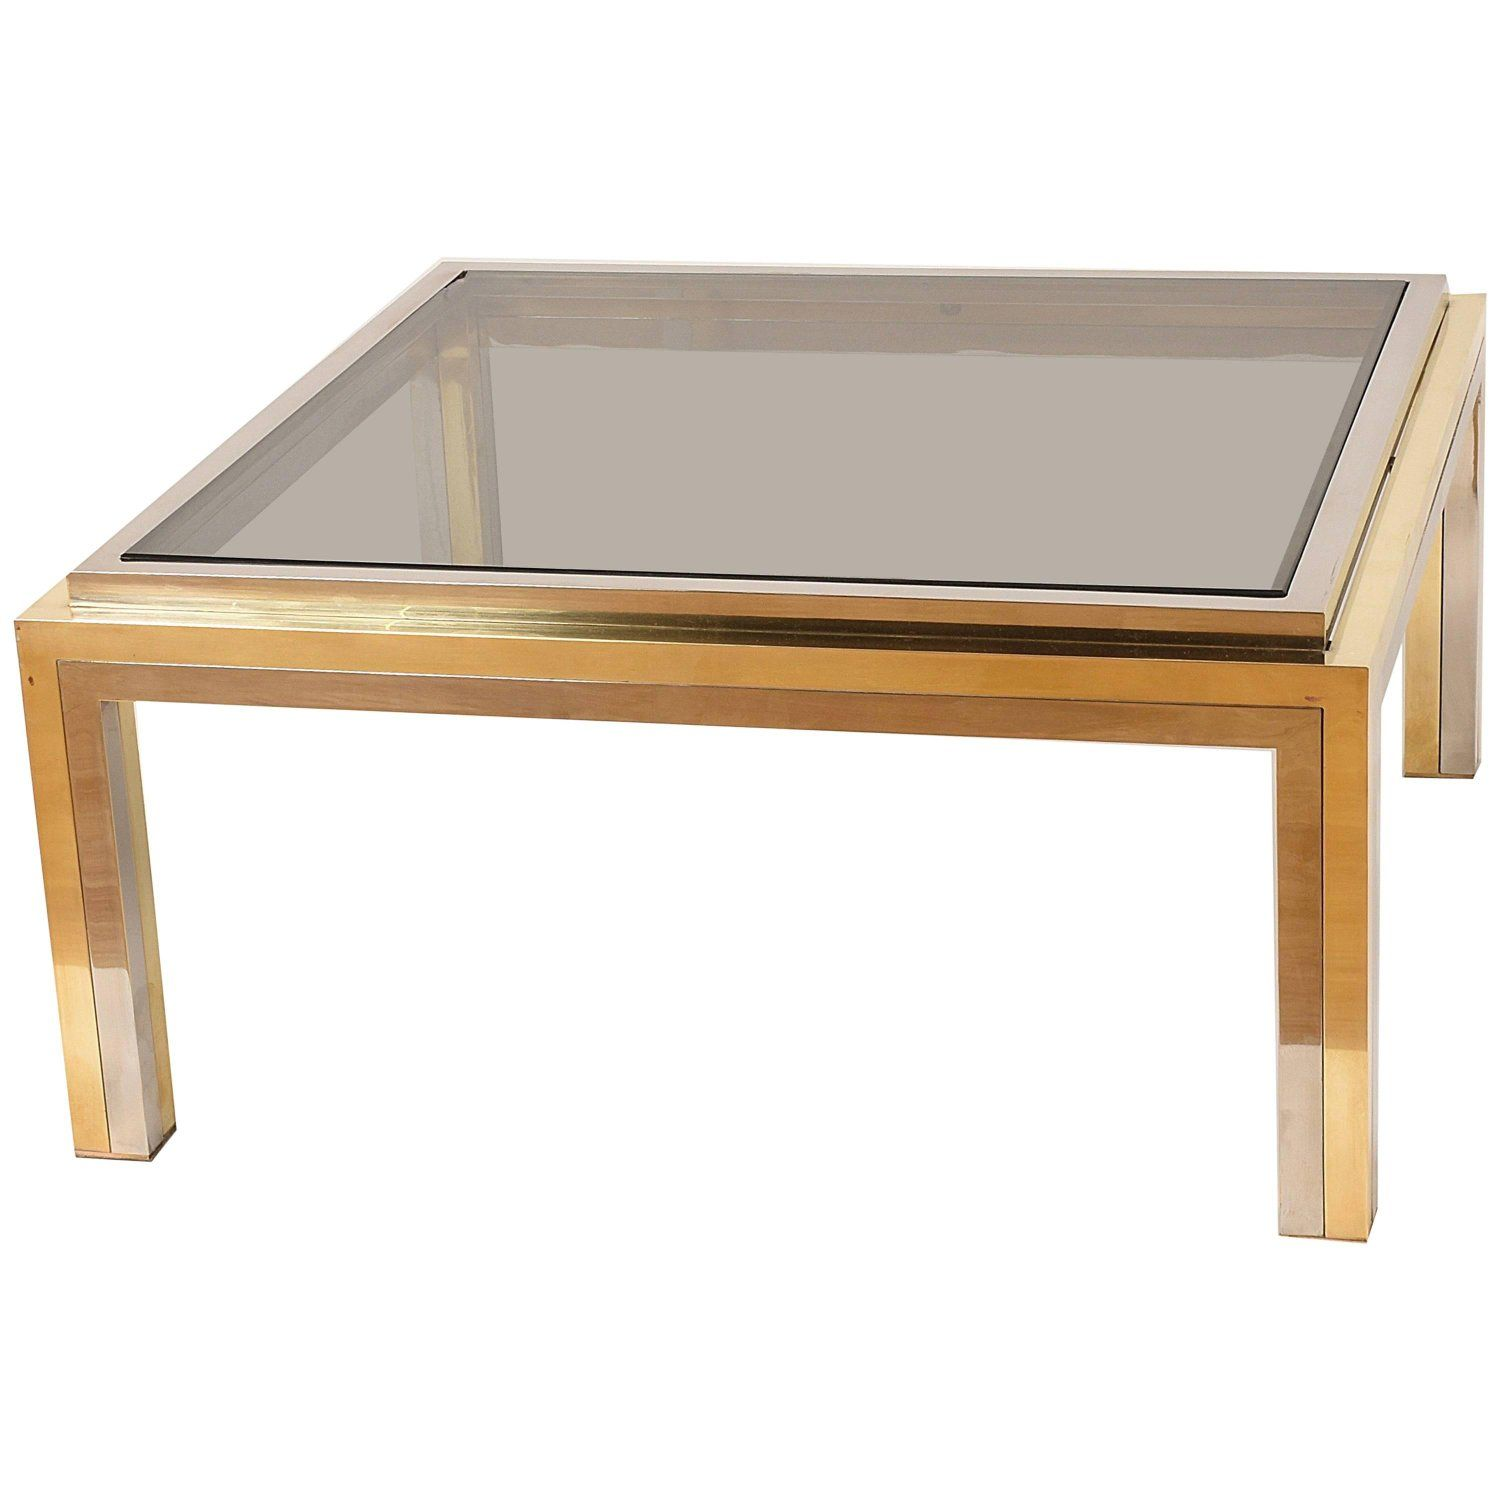 Romeo Rega Square Coffee Table In Brass And Chrome Smoked Glass Italy 1970s Coffee Table Square Coffee Table Smoked Glass